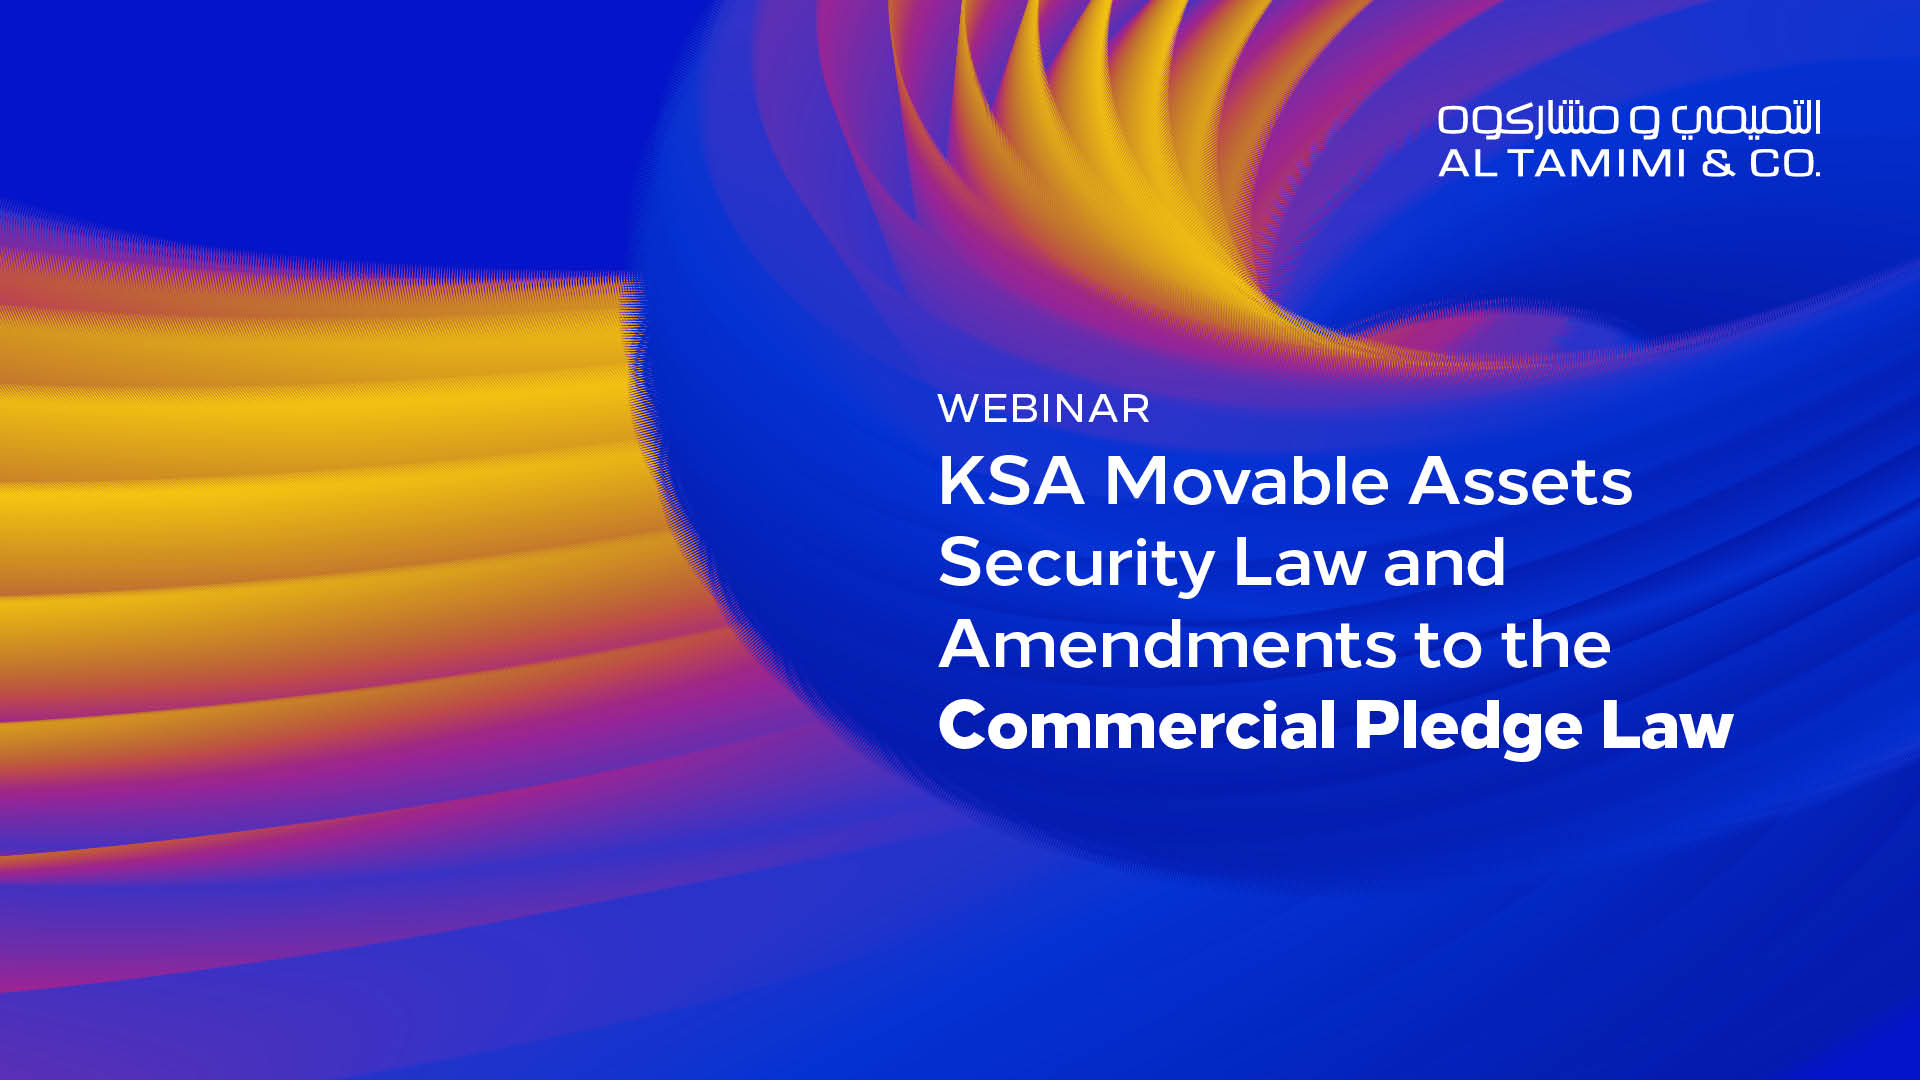 KSA Movable Assets Security Law and Amendments to the Commercial Pledge Law